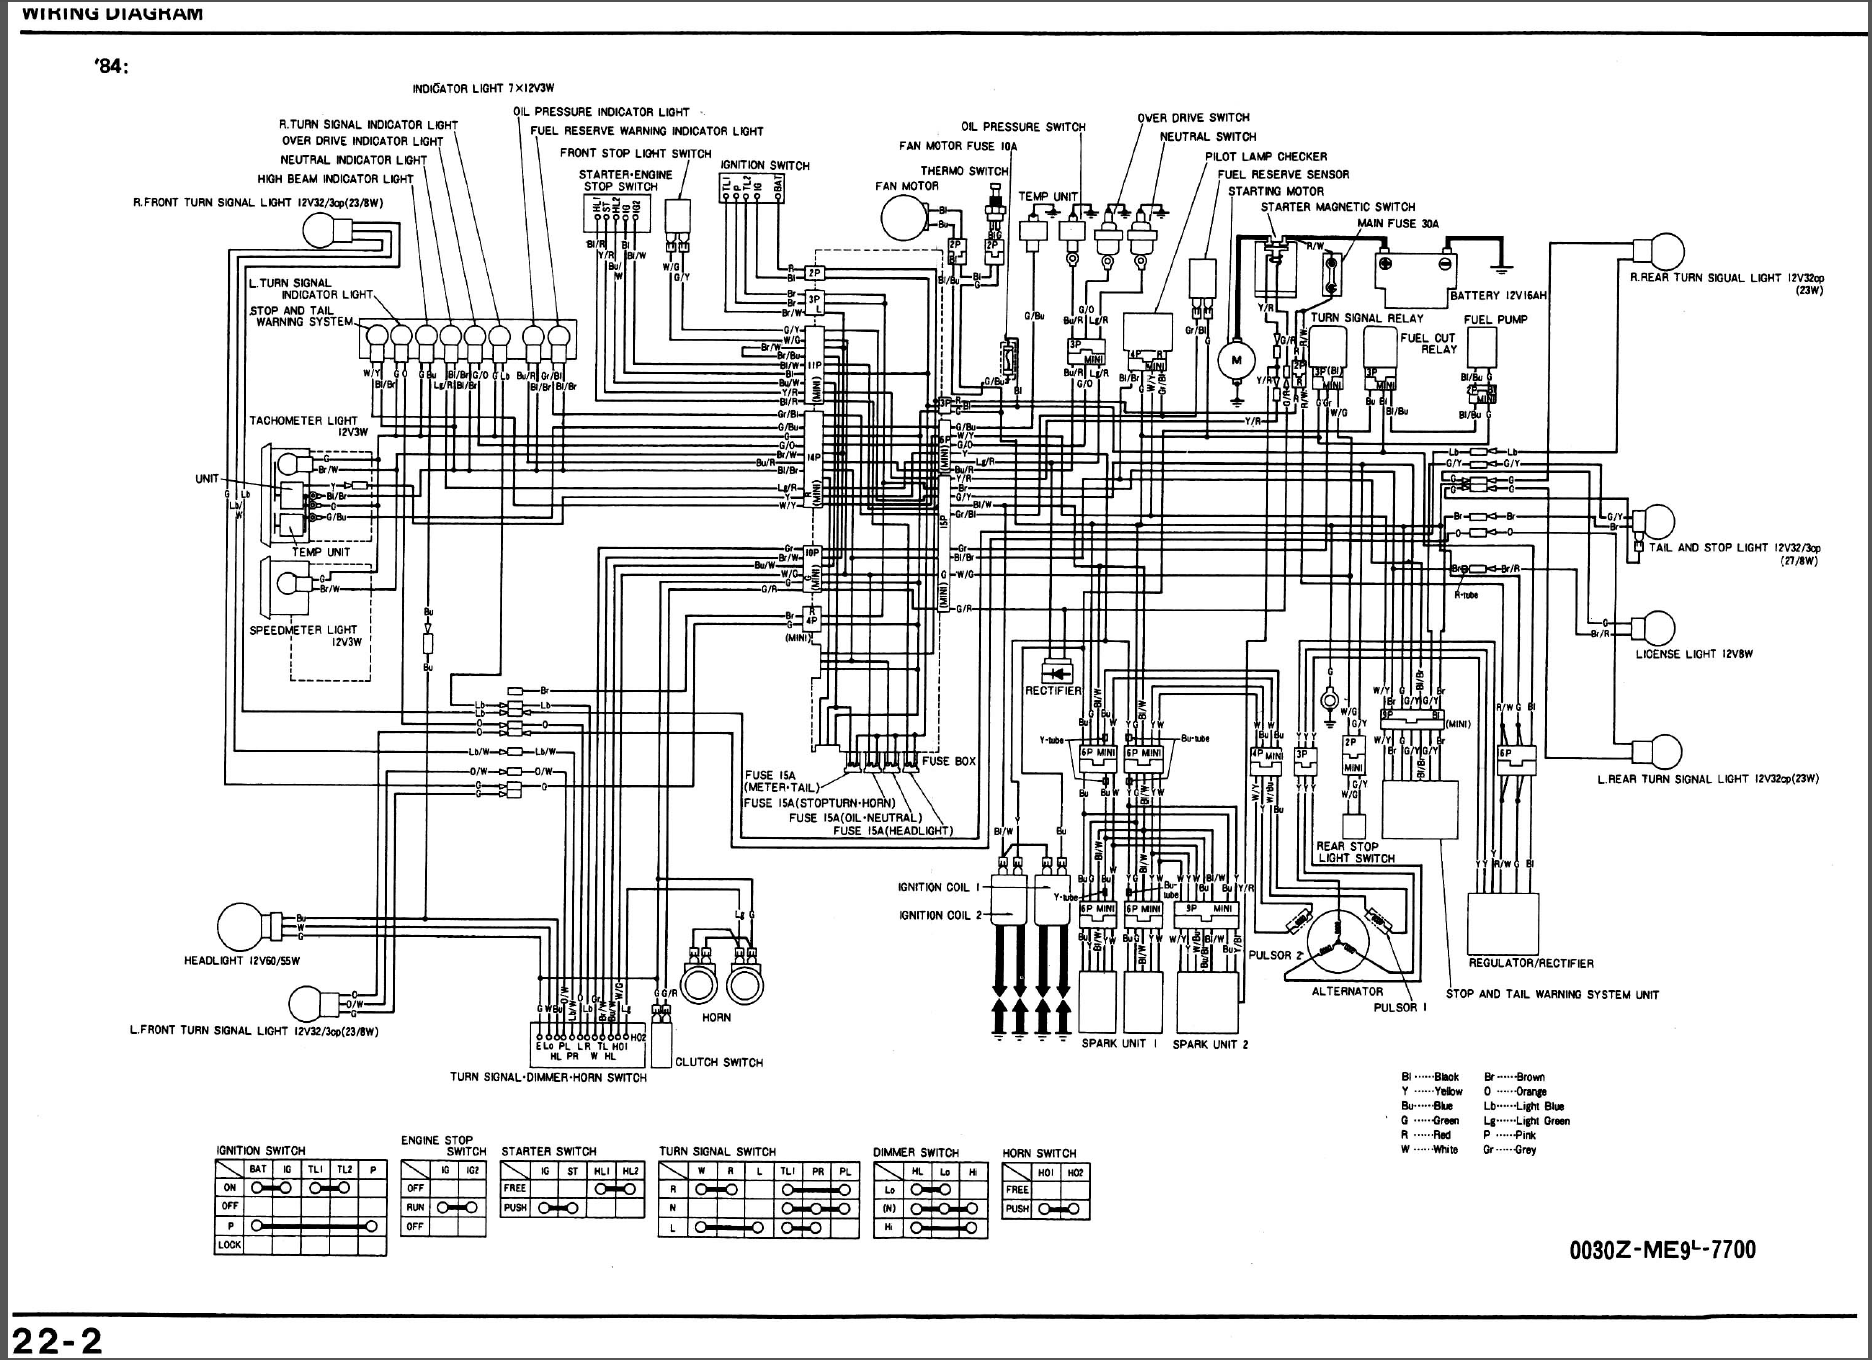 Fuse Box On Honda Shadow Wiring Diagrams Diagram For 1998 Accord Cover Schematic